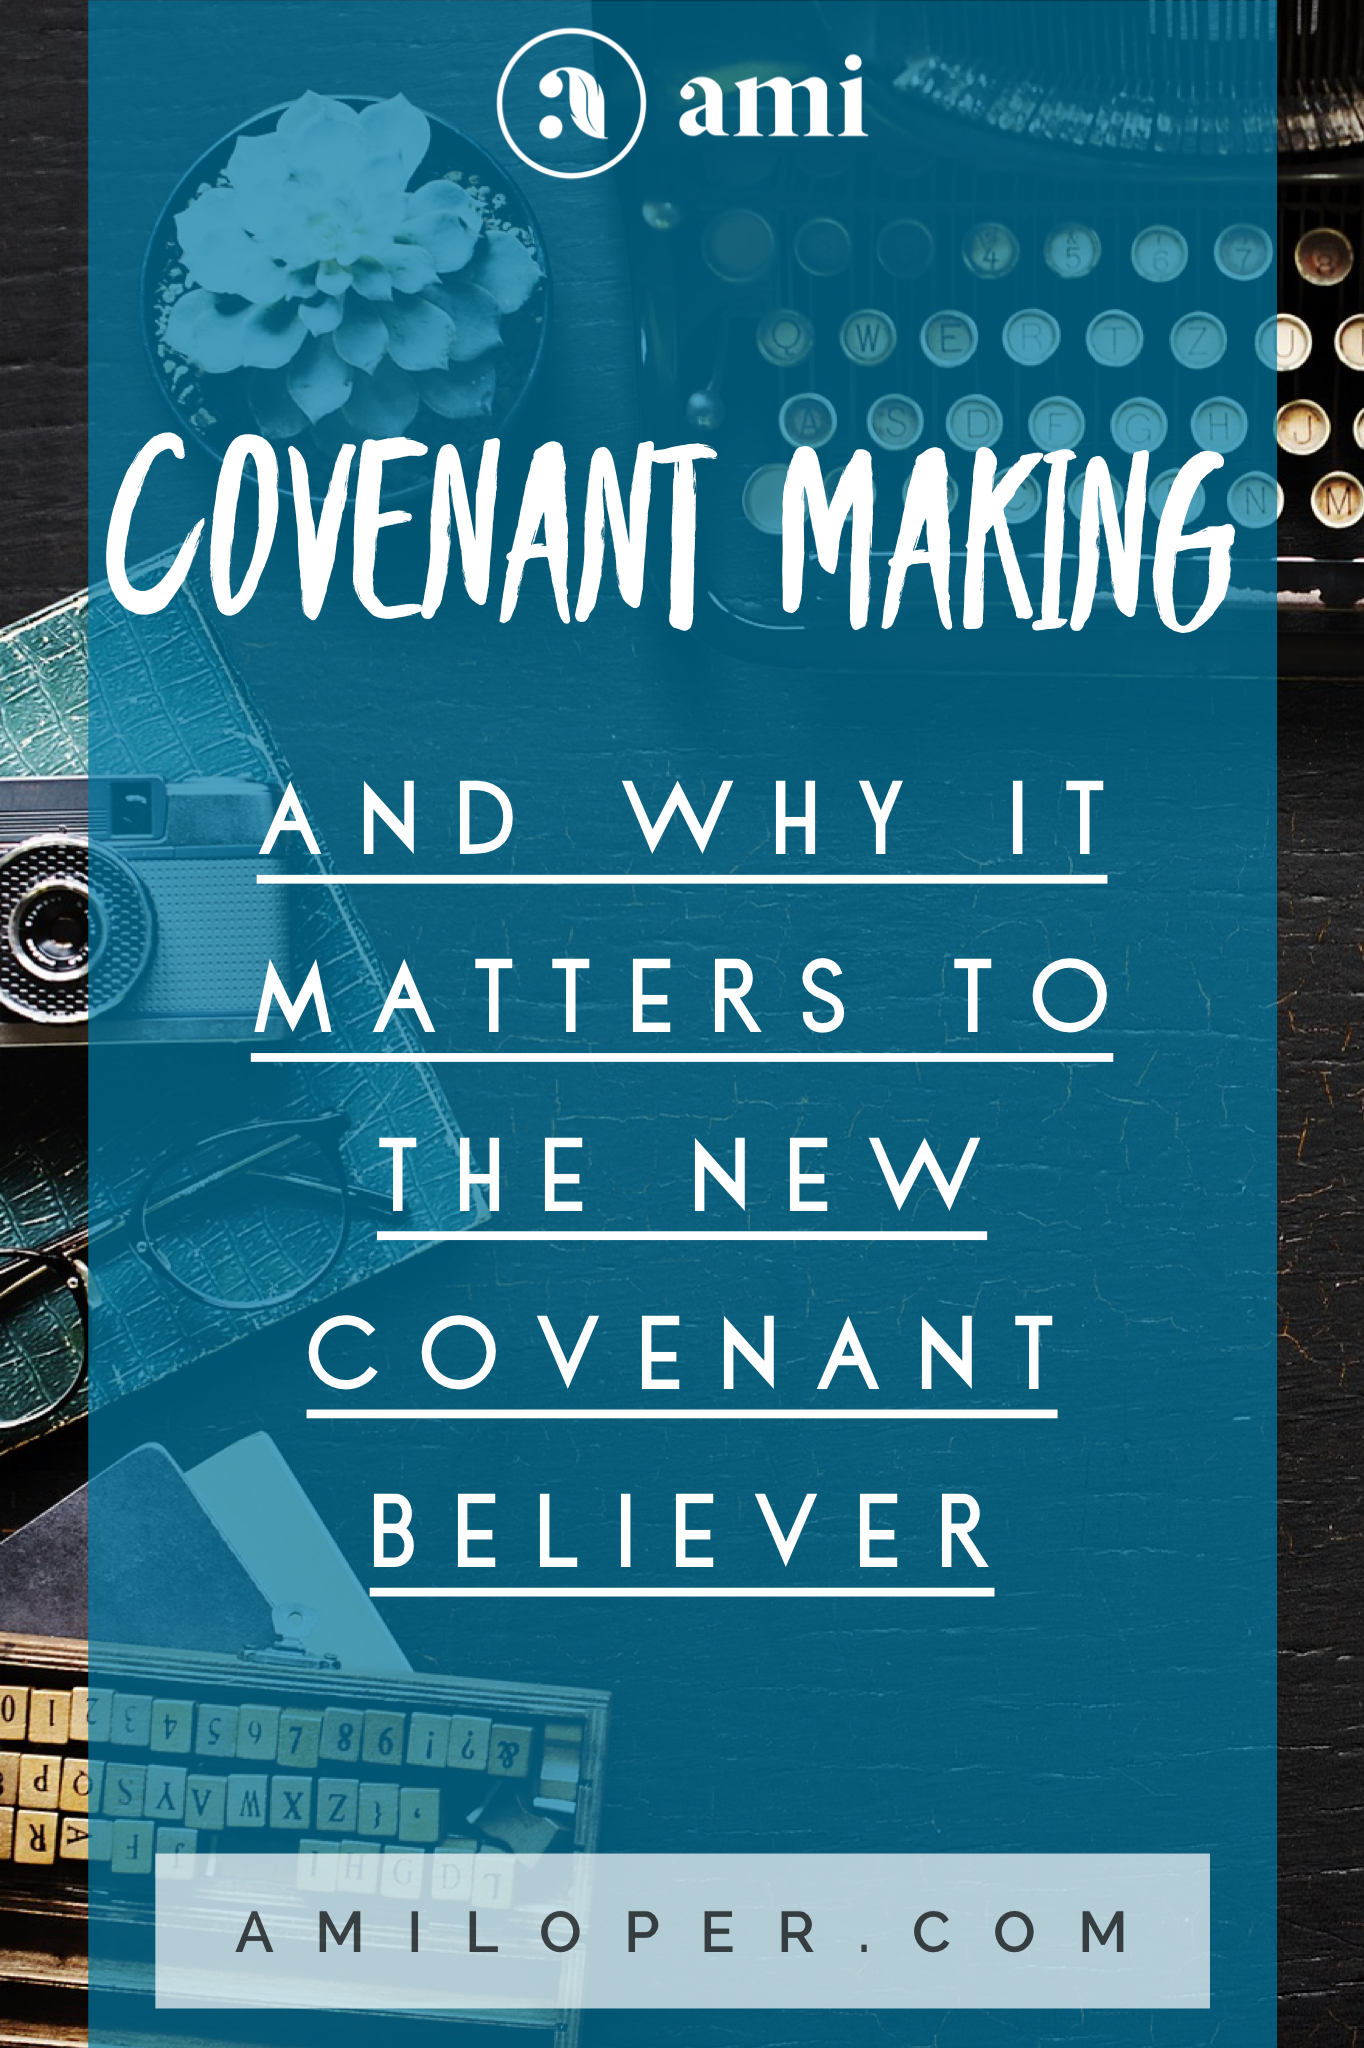 If God is speaking by using imagery that we don't fully understand, it behooves us to LEARN IT! That's where understanding COVENANT comes in. It is the imagery God has used from the beginning of time, imagery with which we have become unfamiliar. Let's learn a few things about it and why it is important to us NOW! #Prayer #HearingGod #StudyingTheBible